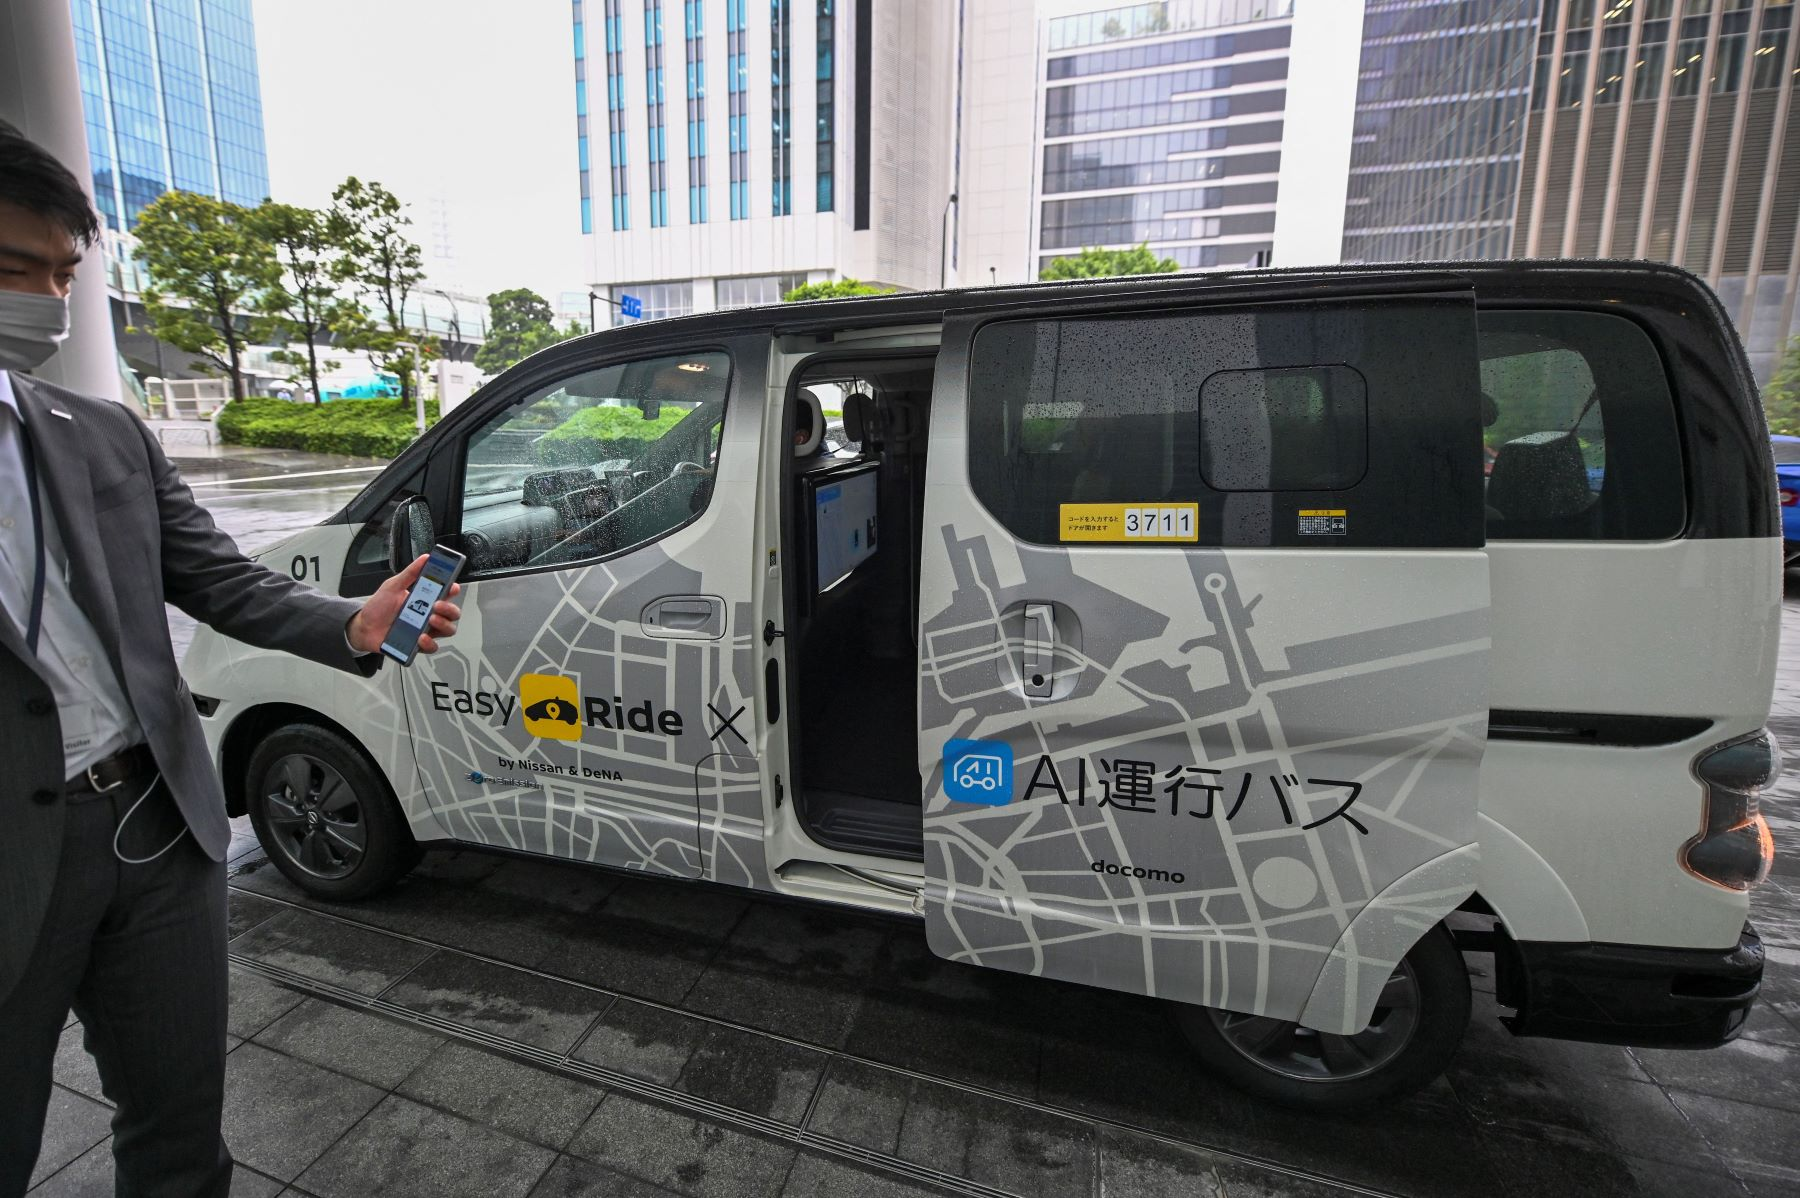 Nissan autonomous self-driving vehicle debut during press preview and operations test in Yokohama, Kanagawa Prefecture, Japan